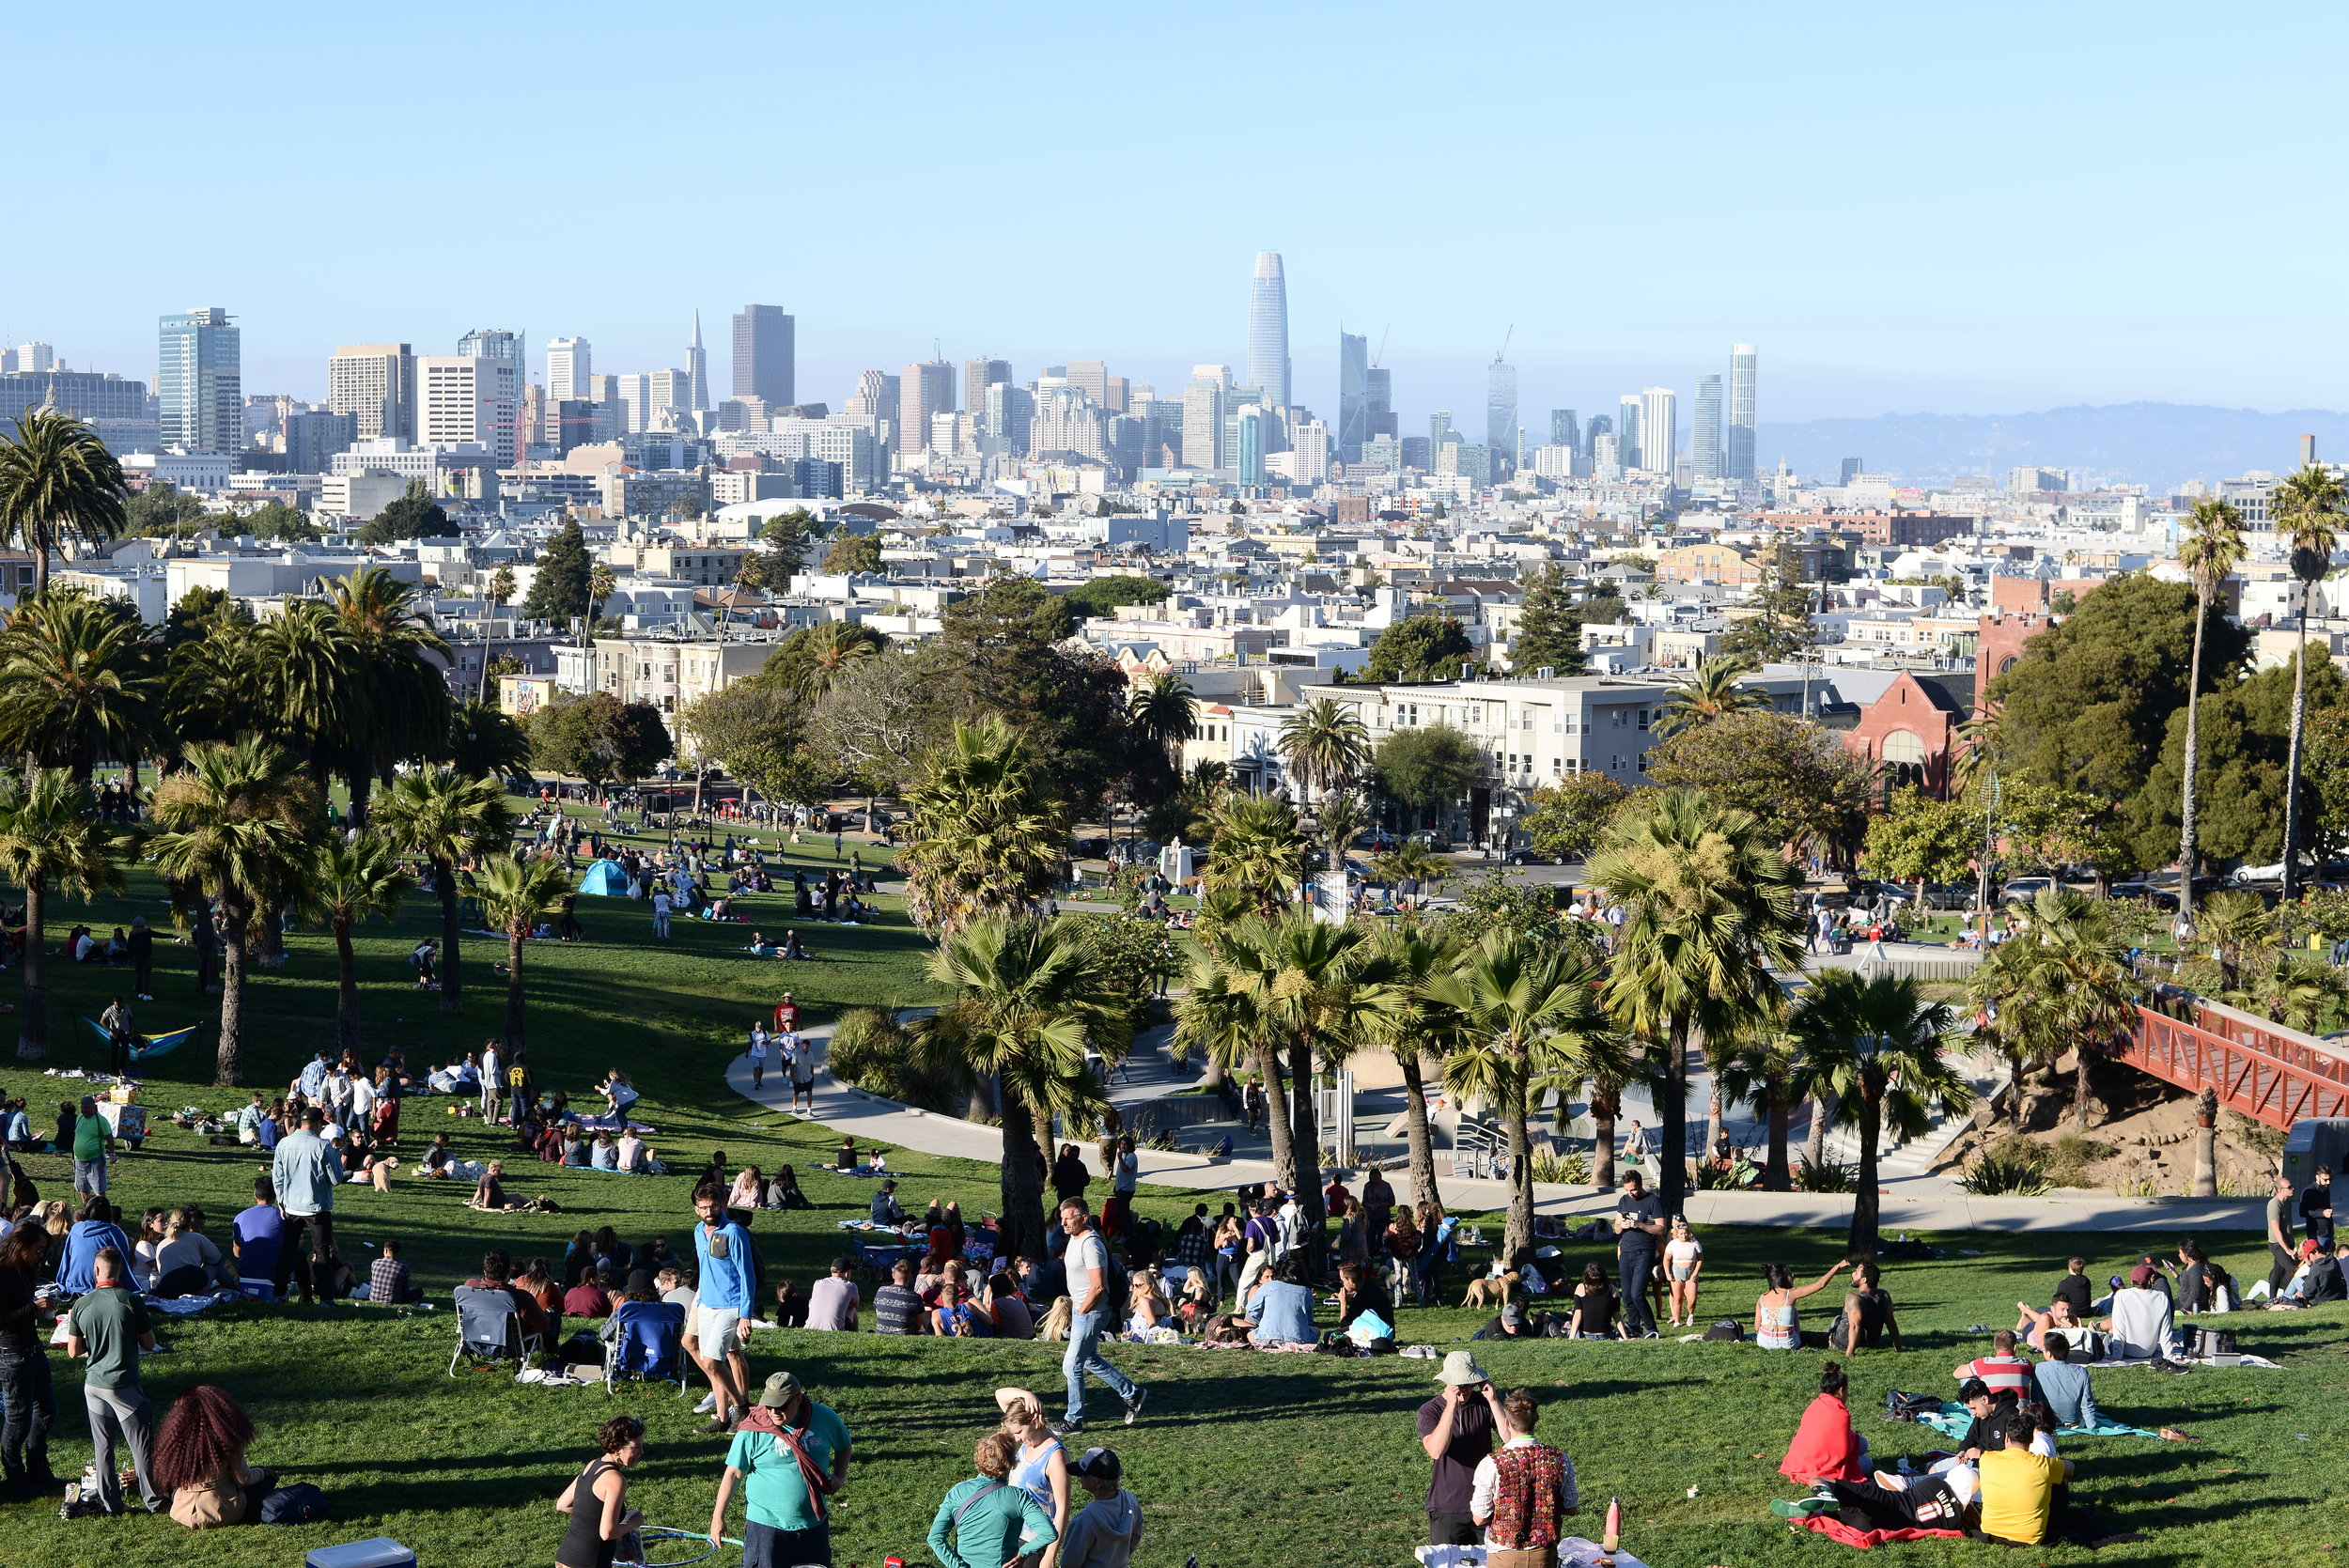 Delores Park near the Mission District in San Francisco.